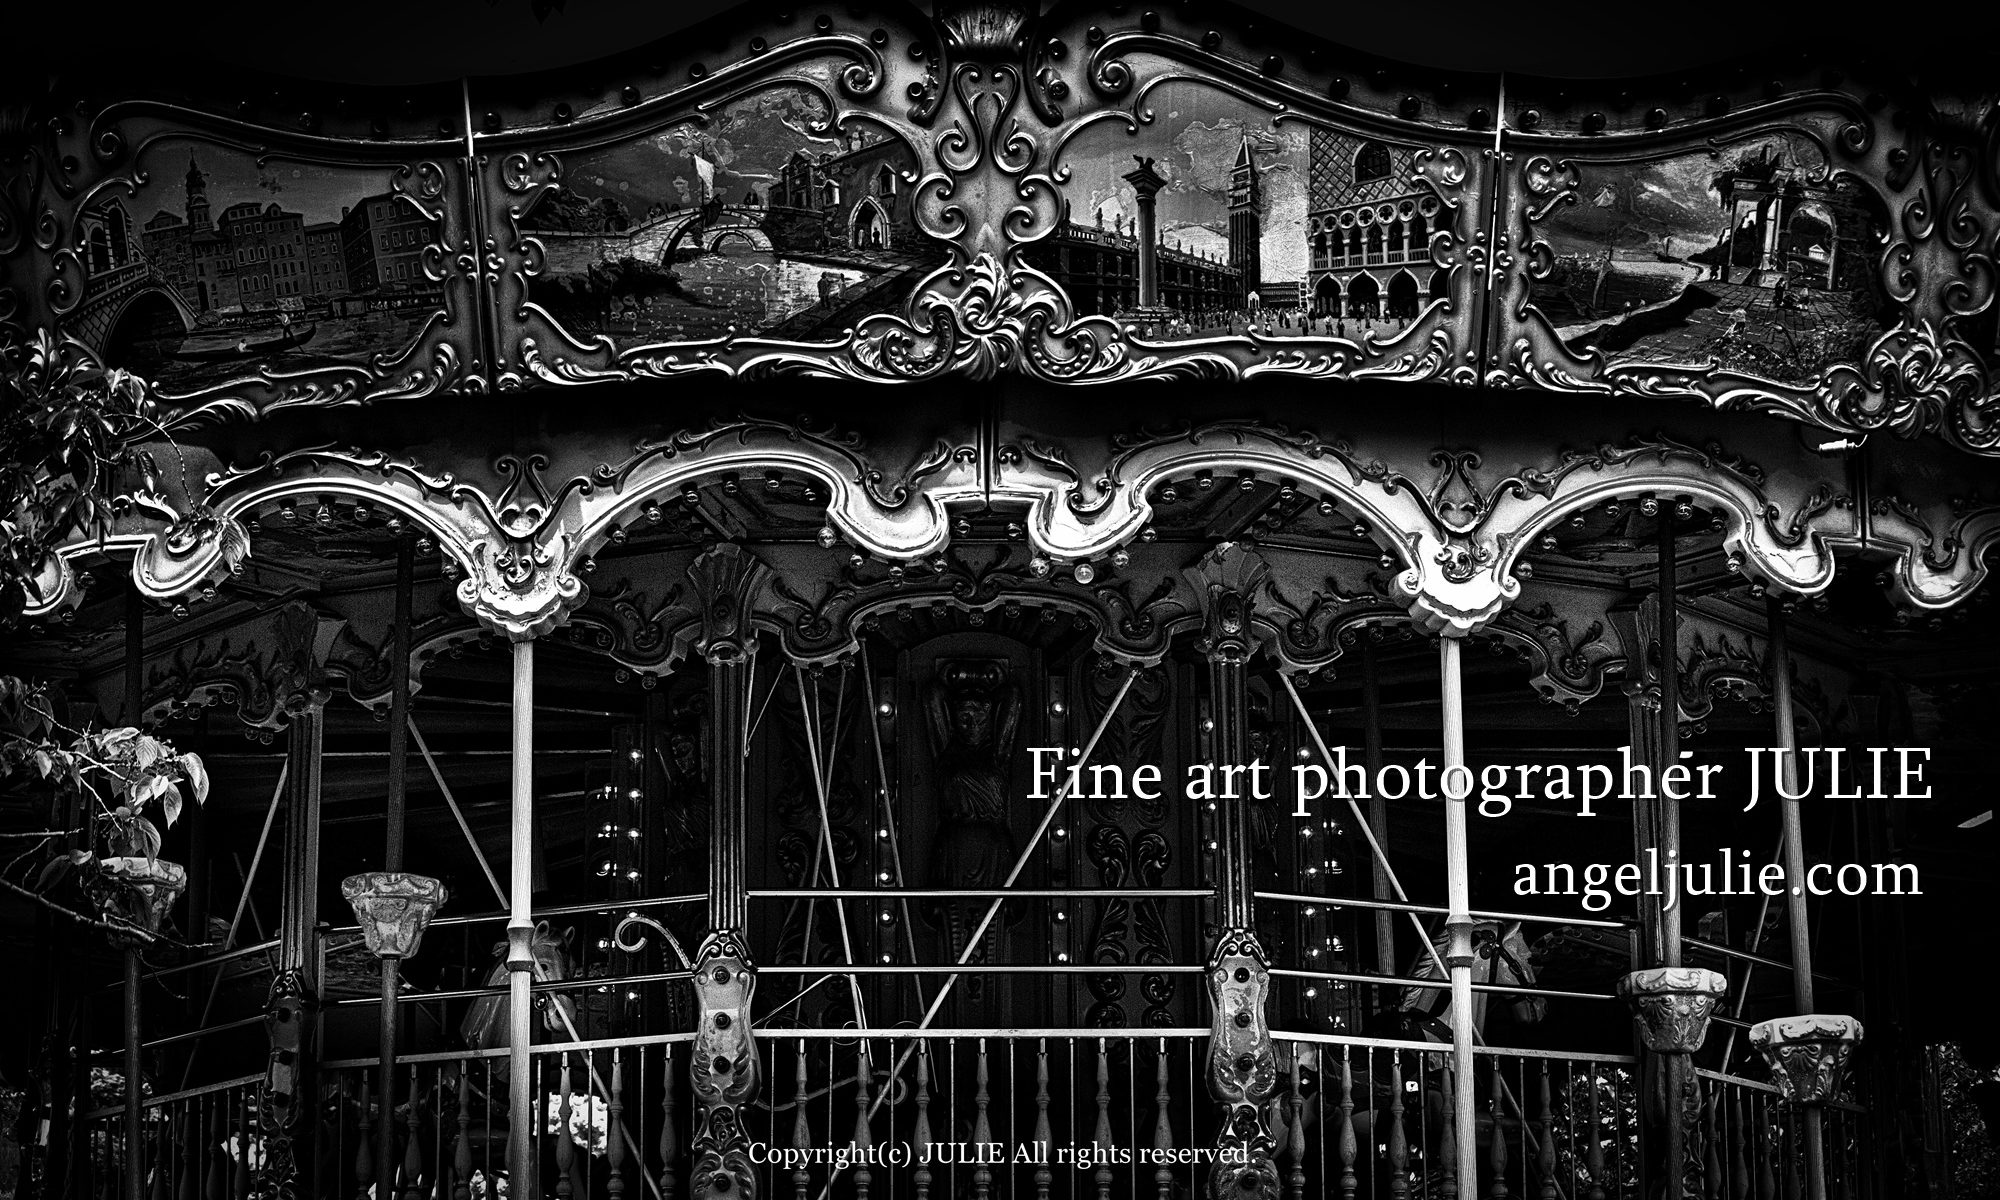 Fine art photographer | Videographer JULIE  | Angel Crystal Artist Angel Julie | Portfolio site